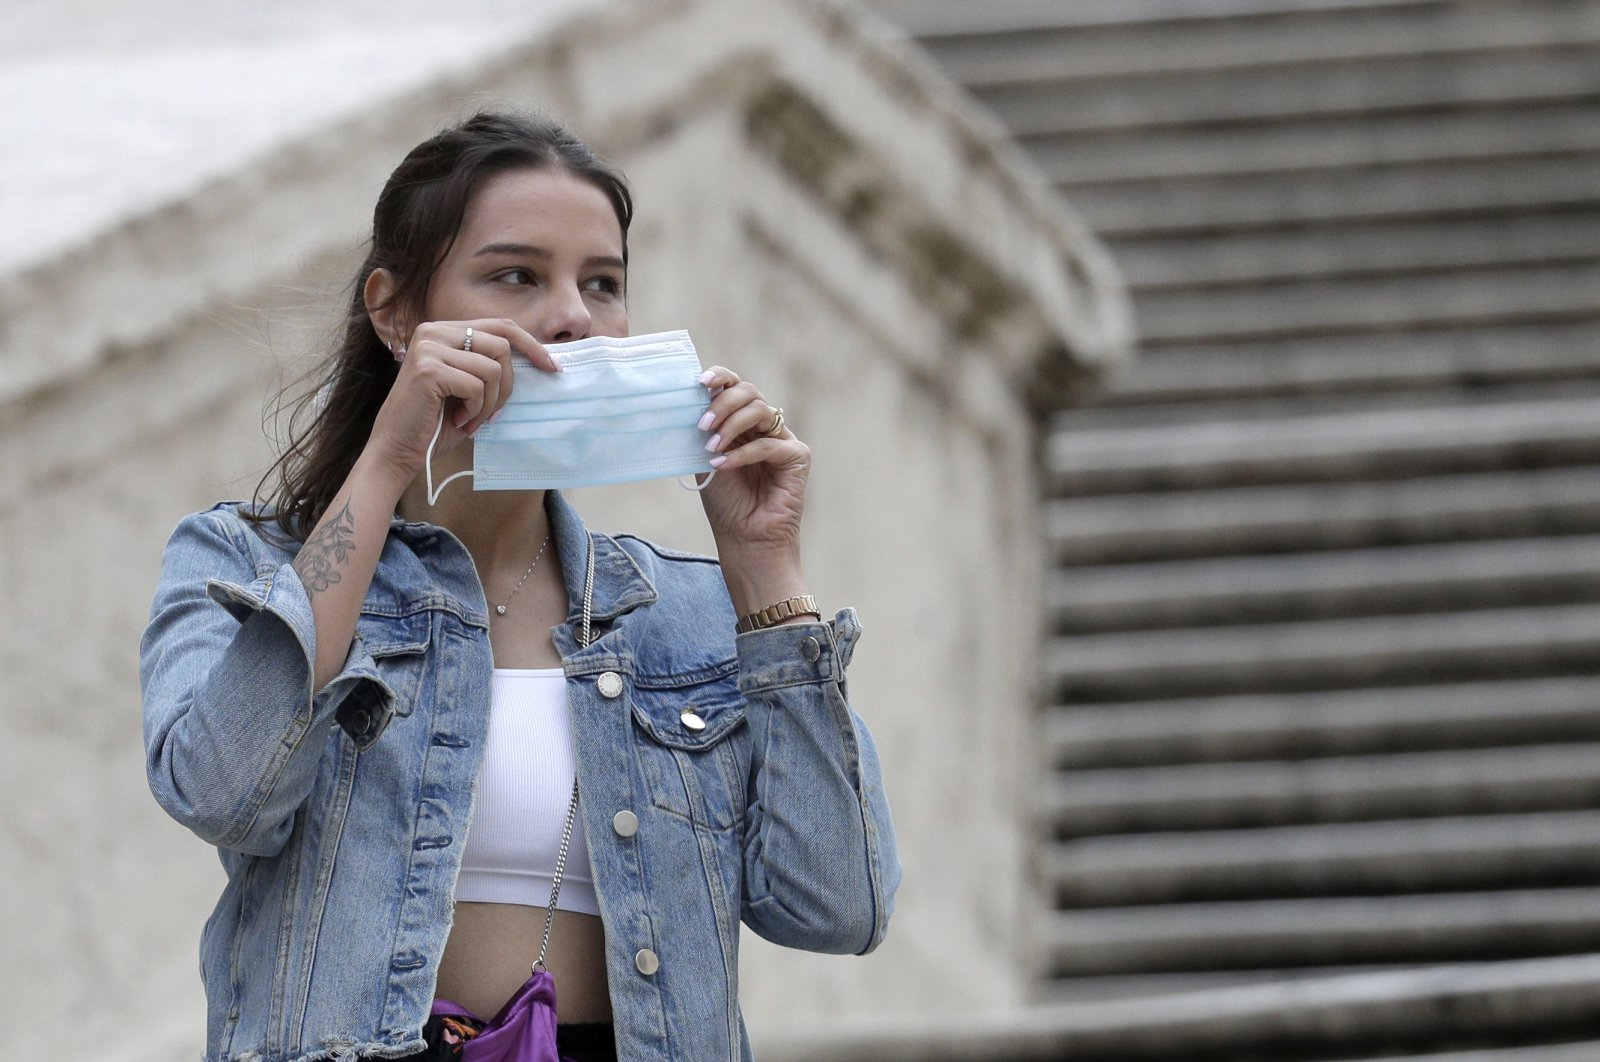 A woman puts on a face mask as a precaution against infection during the coronavirus pandemic, in Rome, Italy, Oct. 6, 2020. (AP Photo)